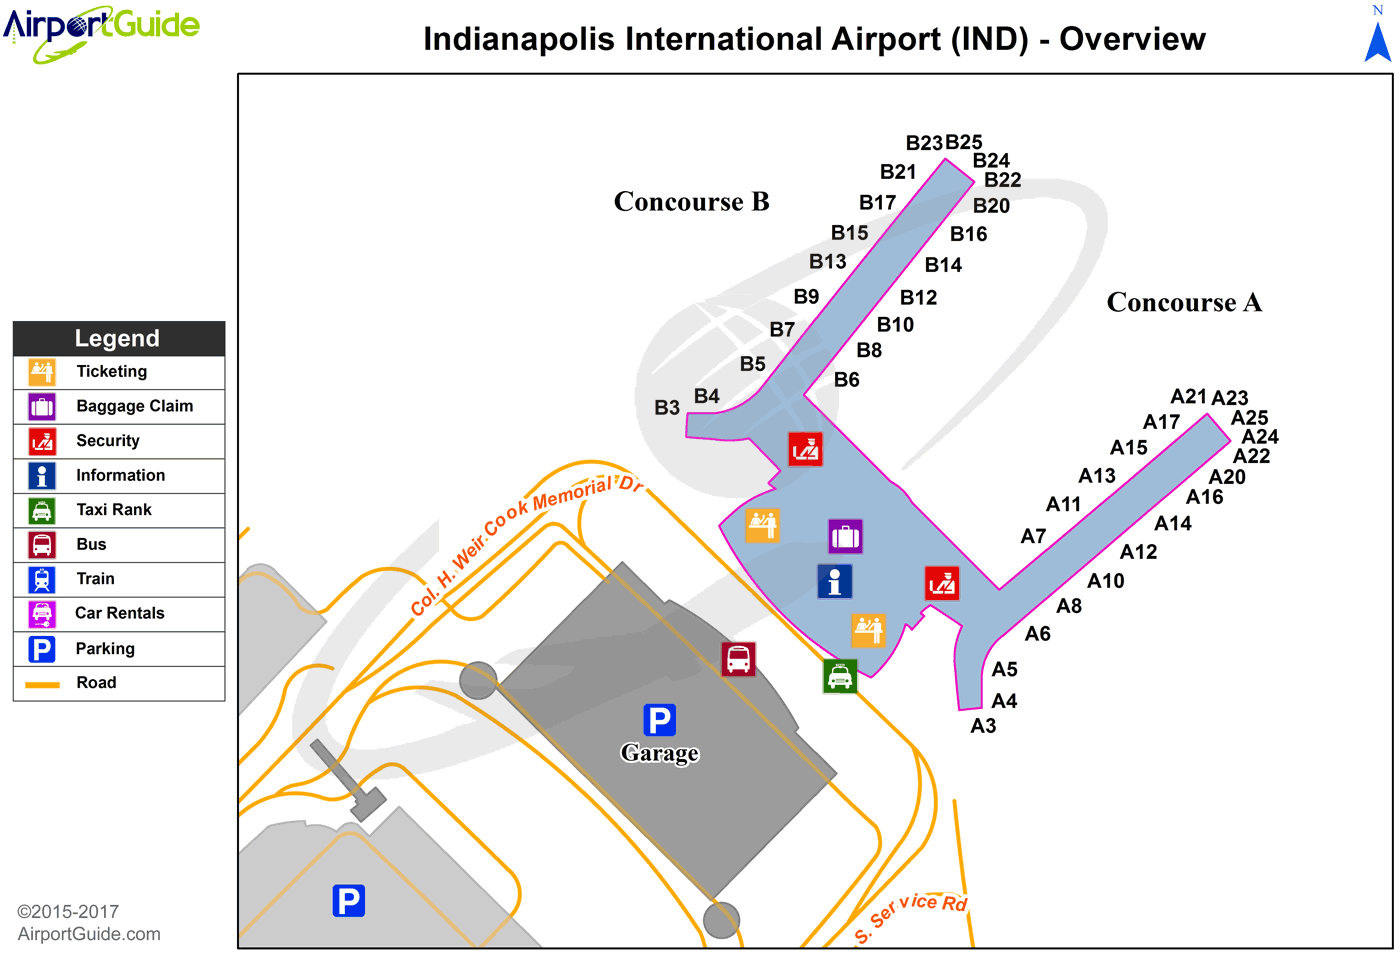 Indianapolis - Indianapolis International (IND) Airport Terminal Map - Overview